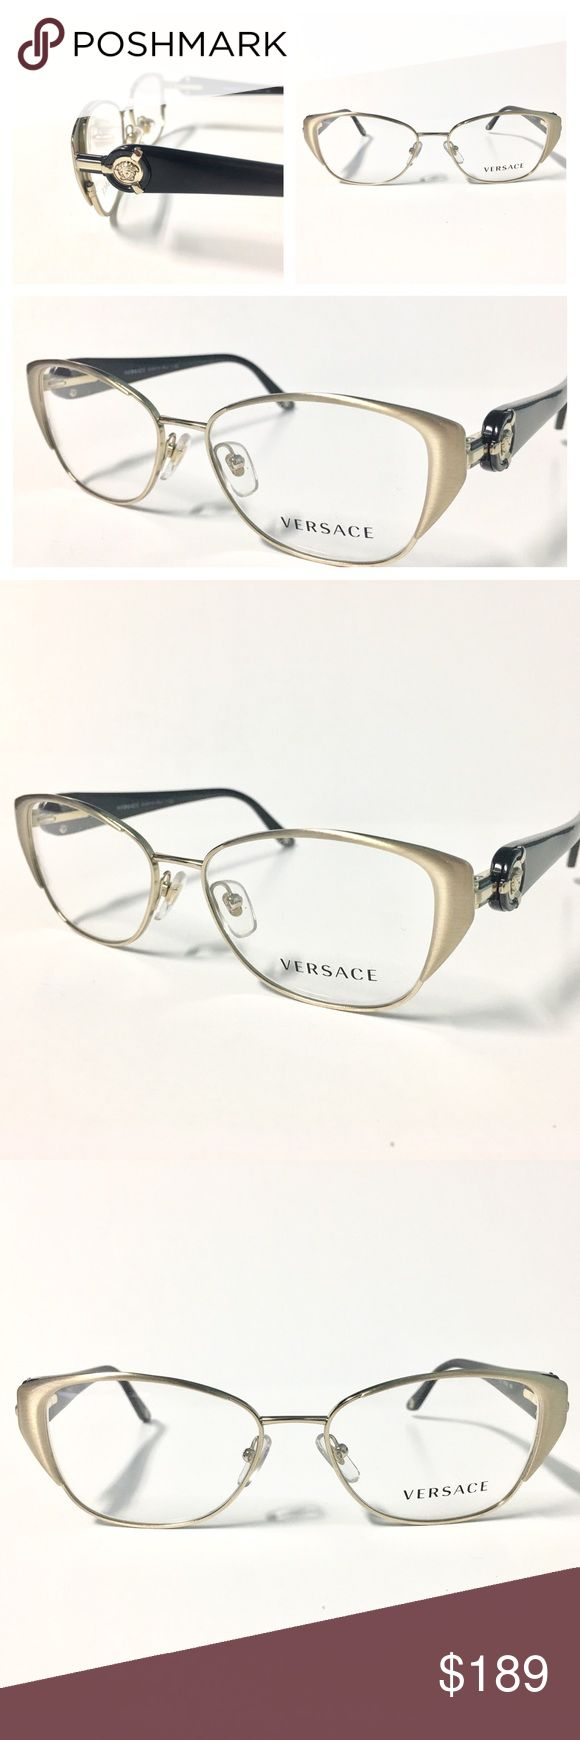 Women's Eyeglasses Brushed Gold and Black Women's Eyeglasses Cat Eye Optical Frame Brushed Gold with Black Temples  51mm-15mm-135mm  Authentic with Versace Case, Cloth and Gift box...      We Confirm and Ship this item Same day! Versace Accessories Glasses